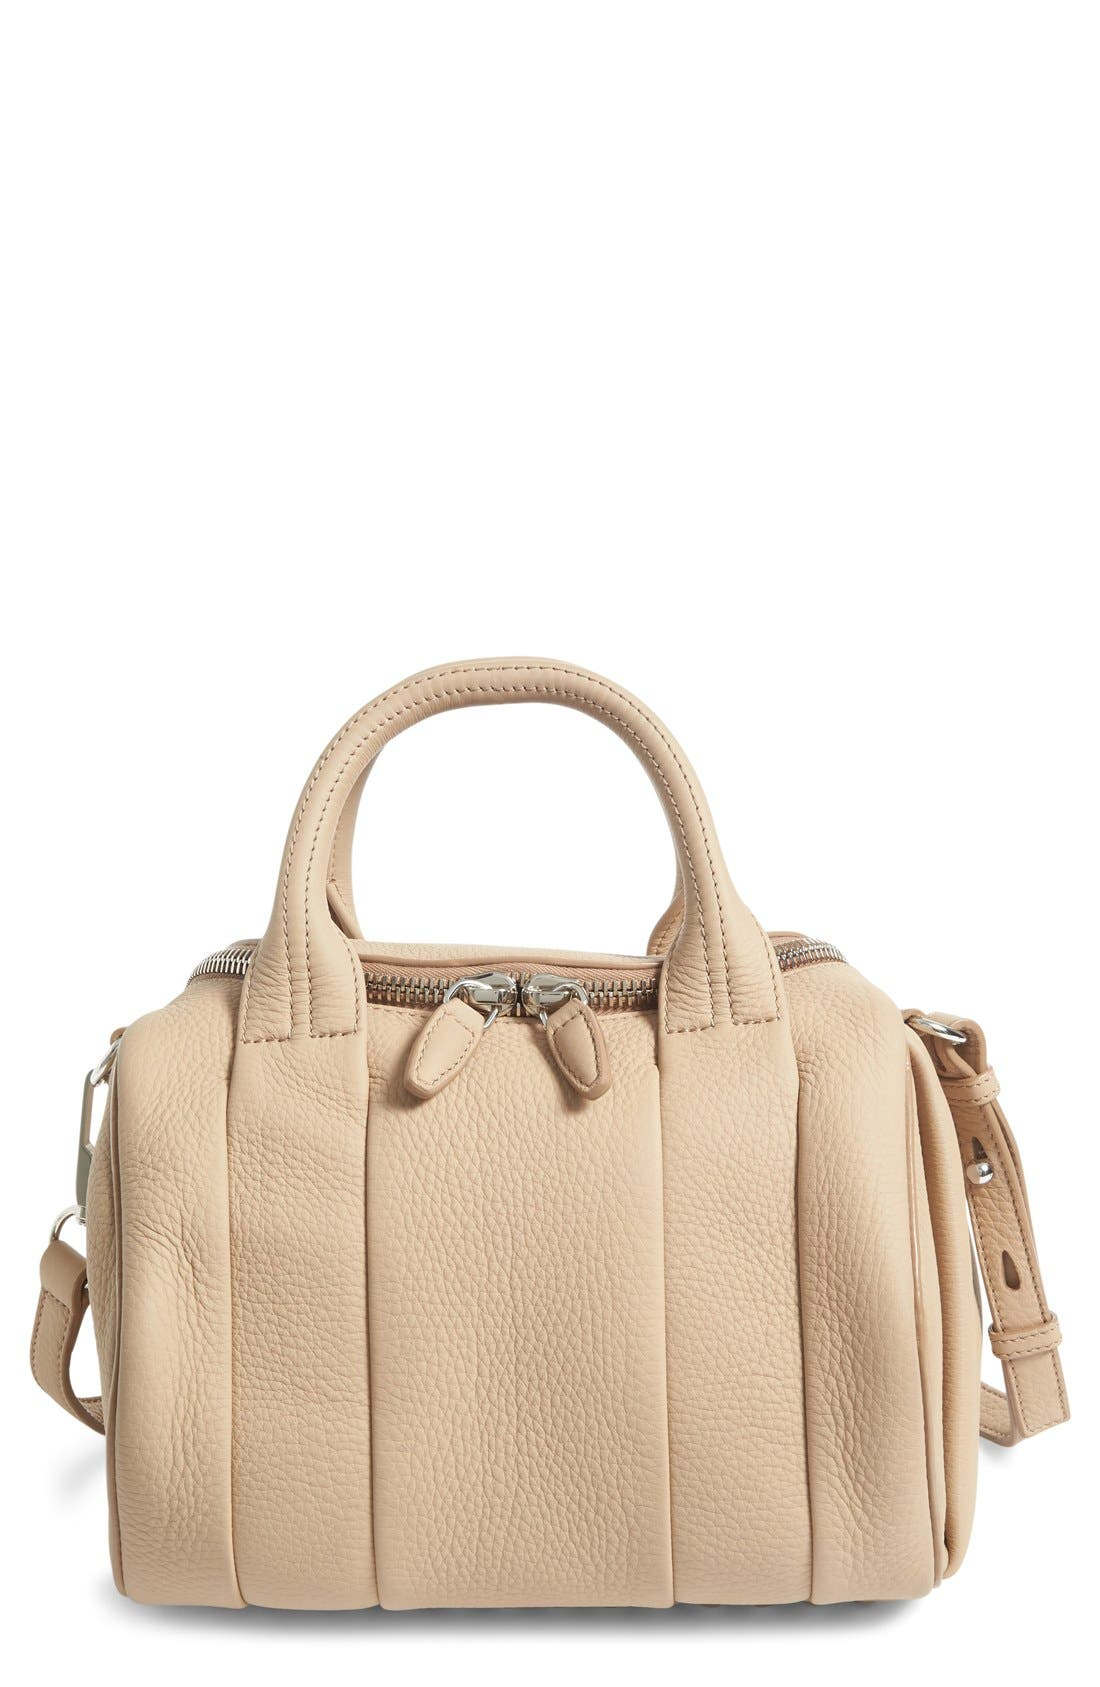 Main Image - Alexander Wang Rockie Matte Pebbled Leather Satchel